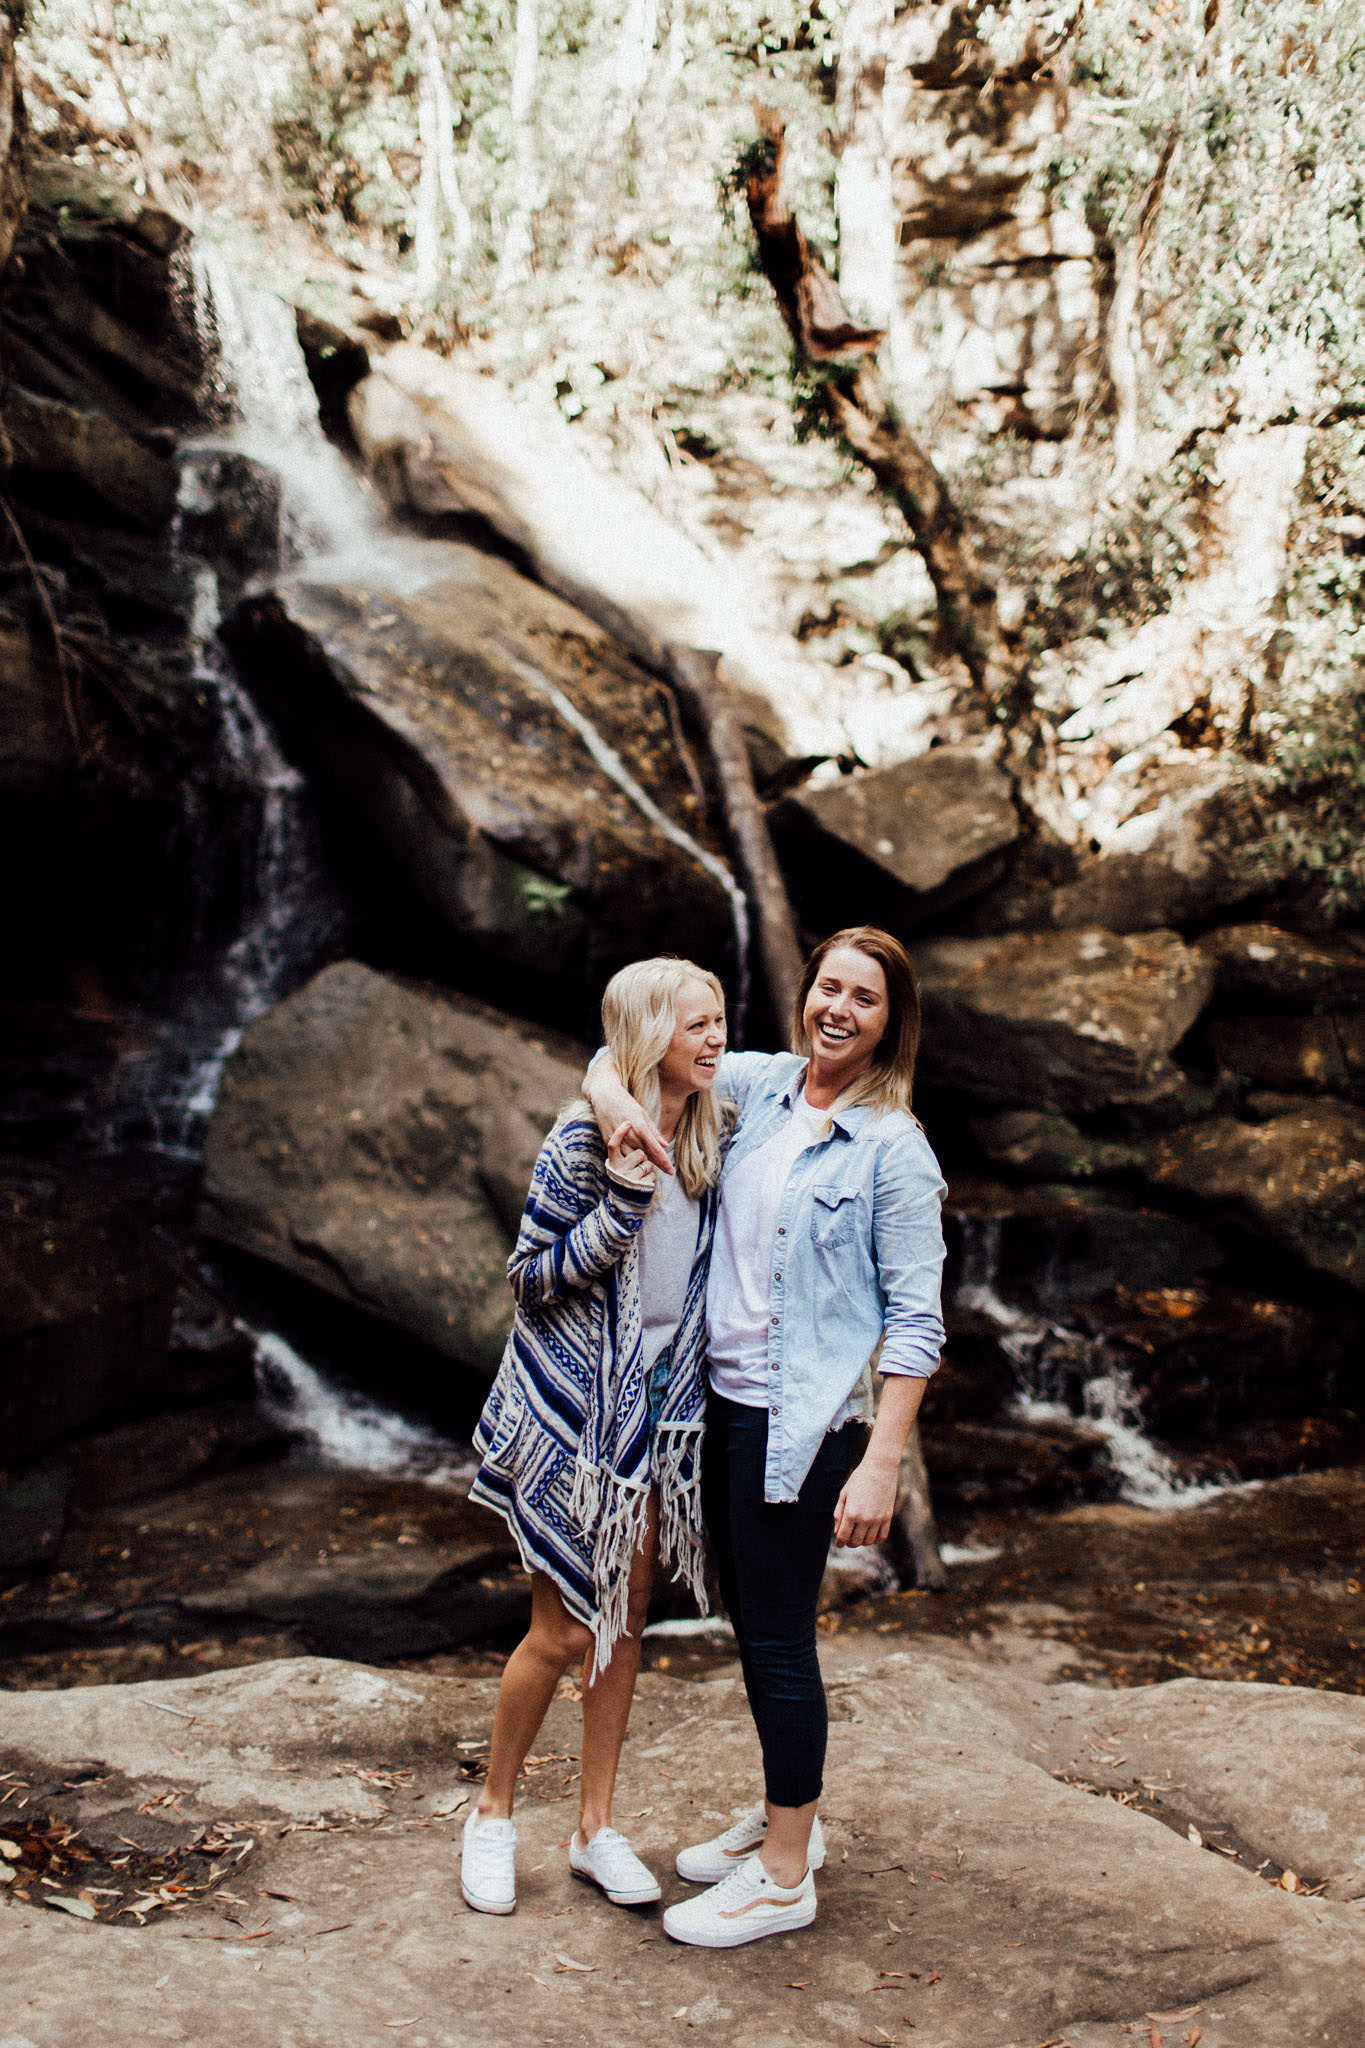 Bri_Gem_Proposal_LaurenAnnePhotography-1006.jpg